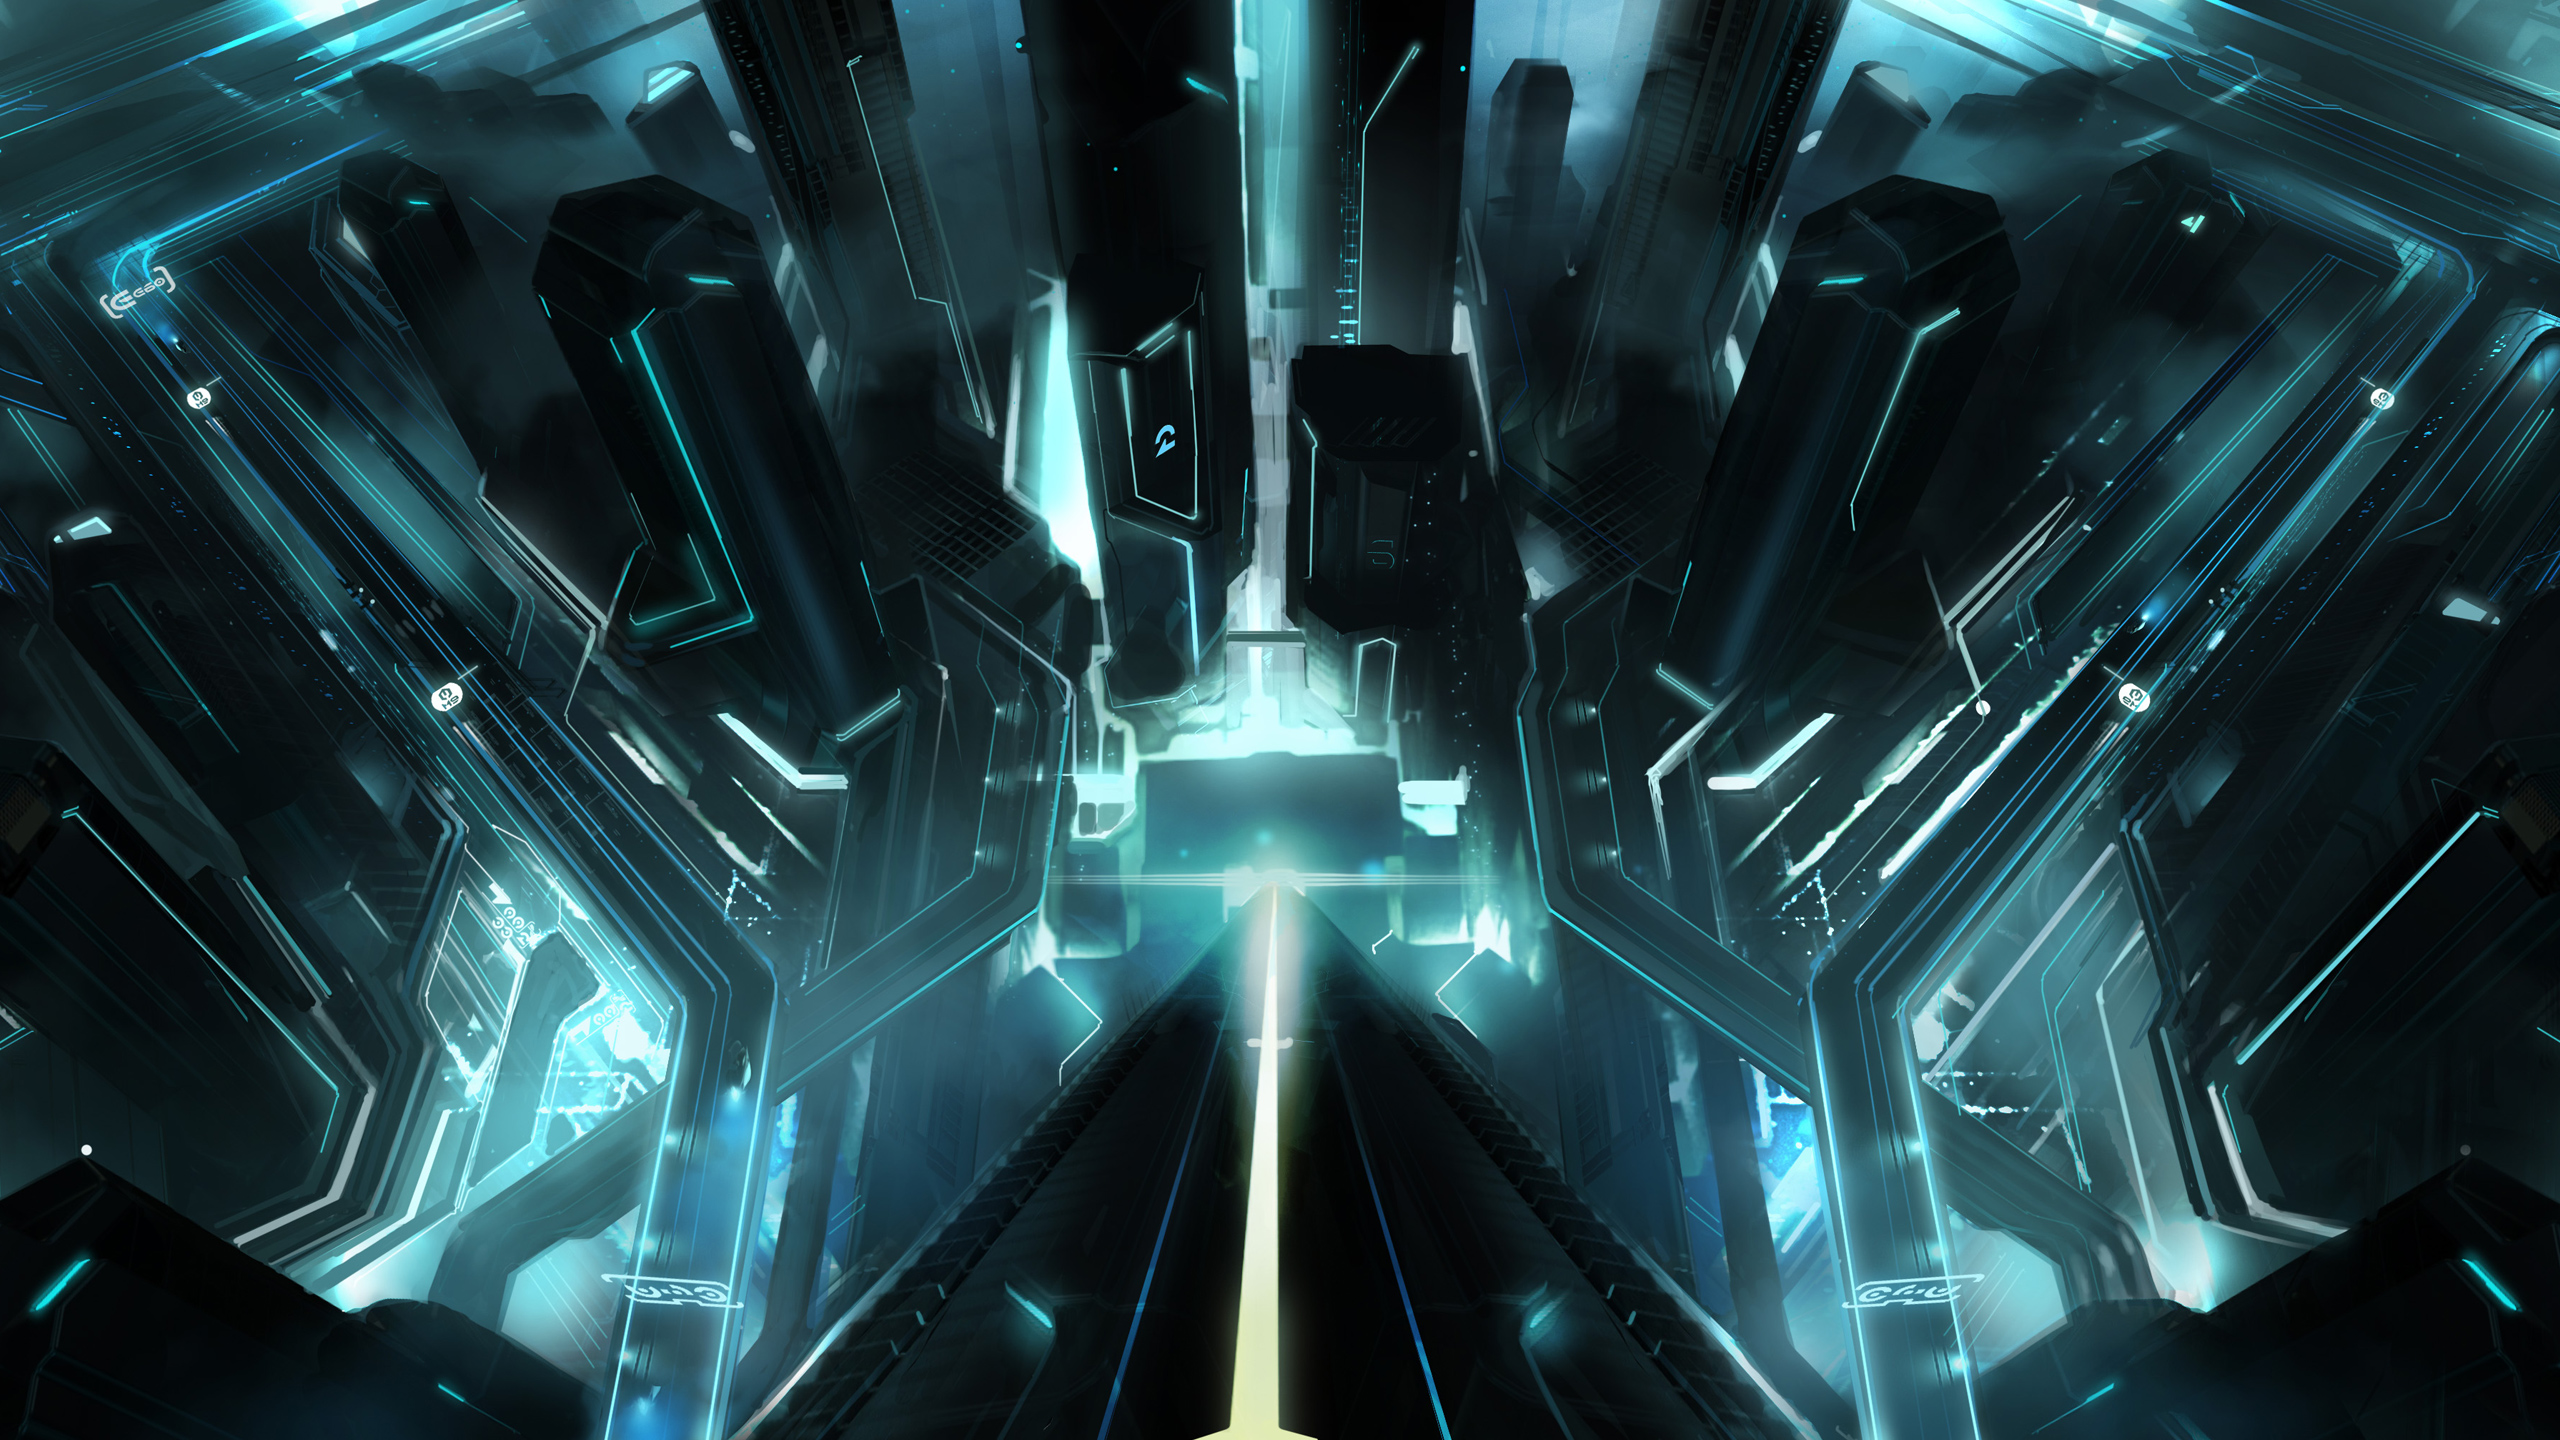 Tron City 4171205 2560x1440 All For Desktop